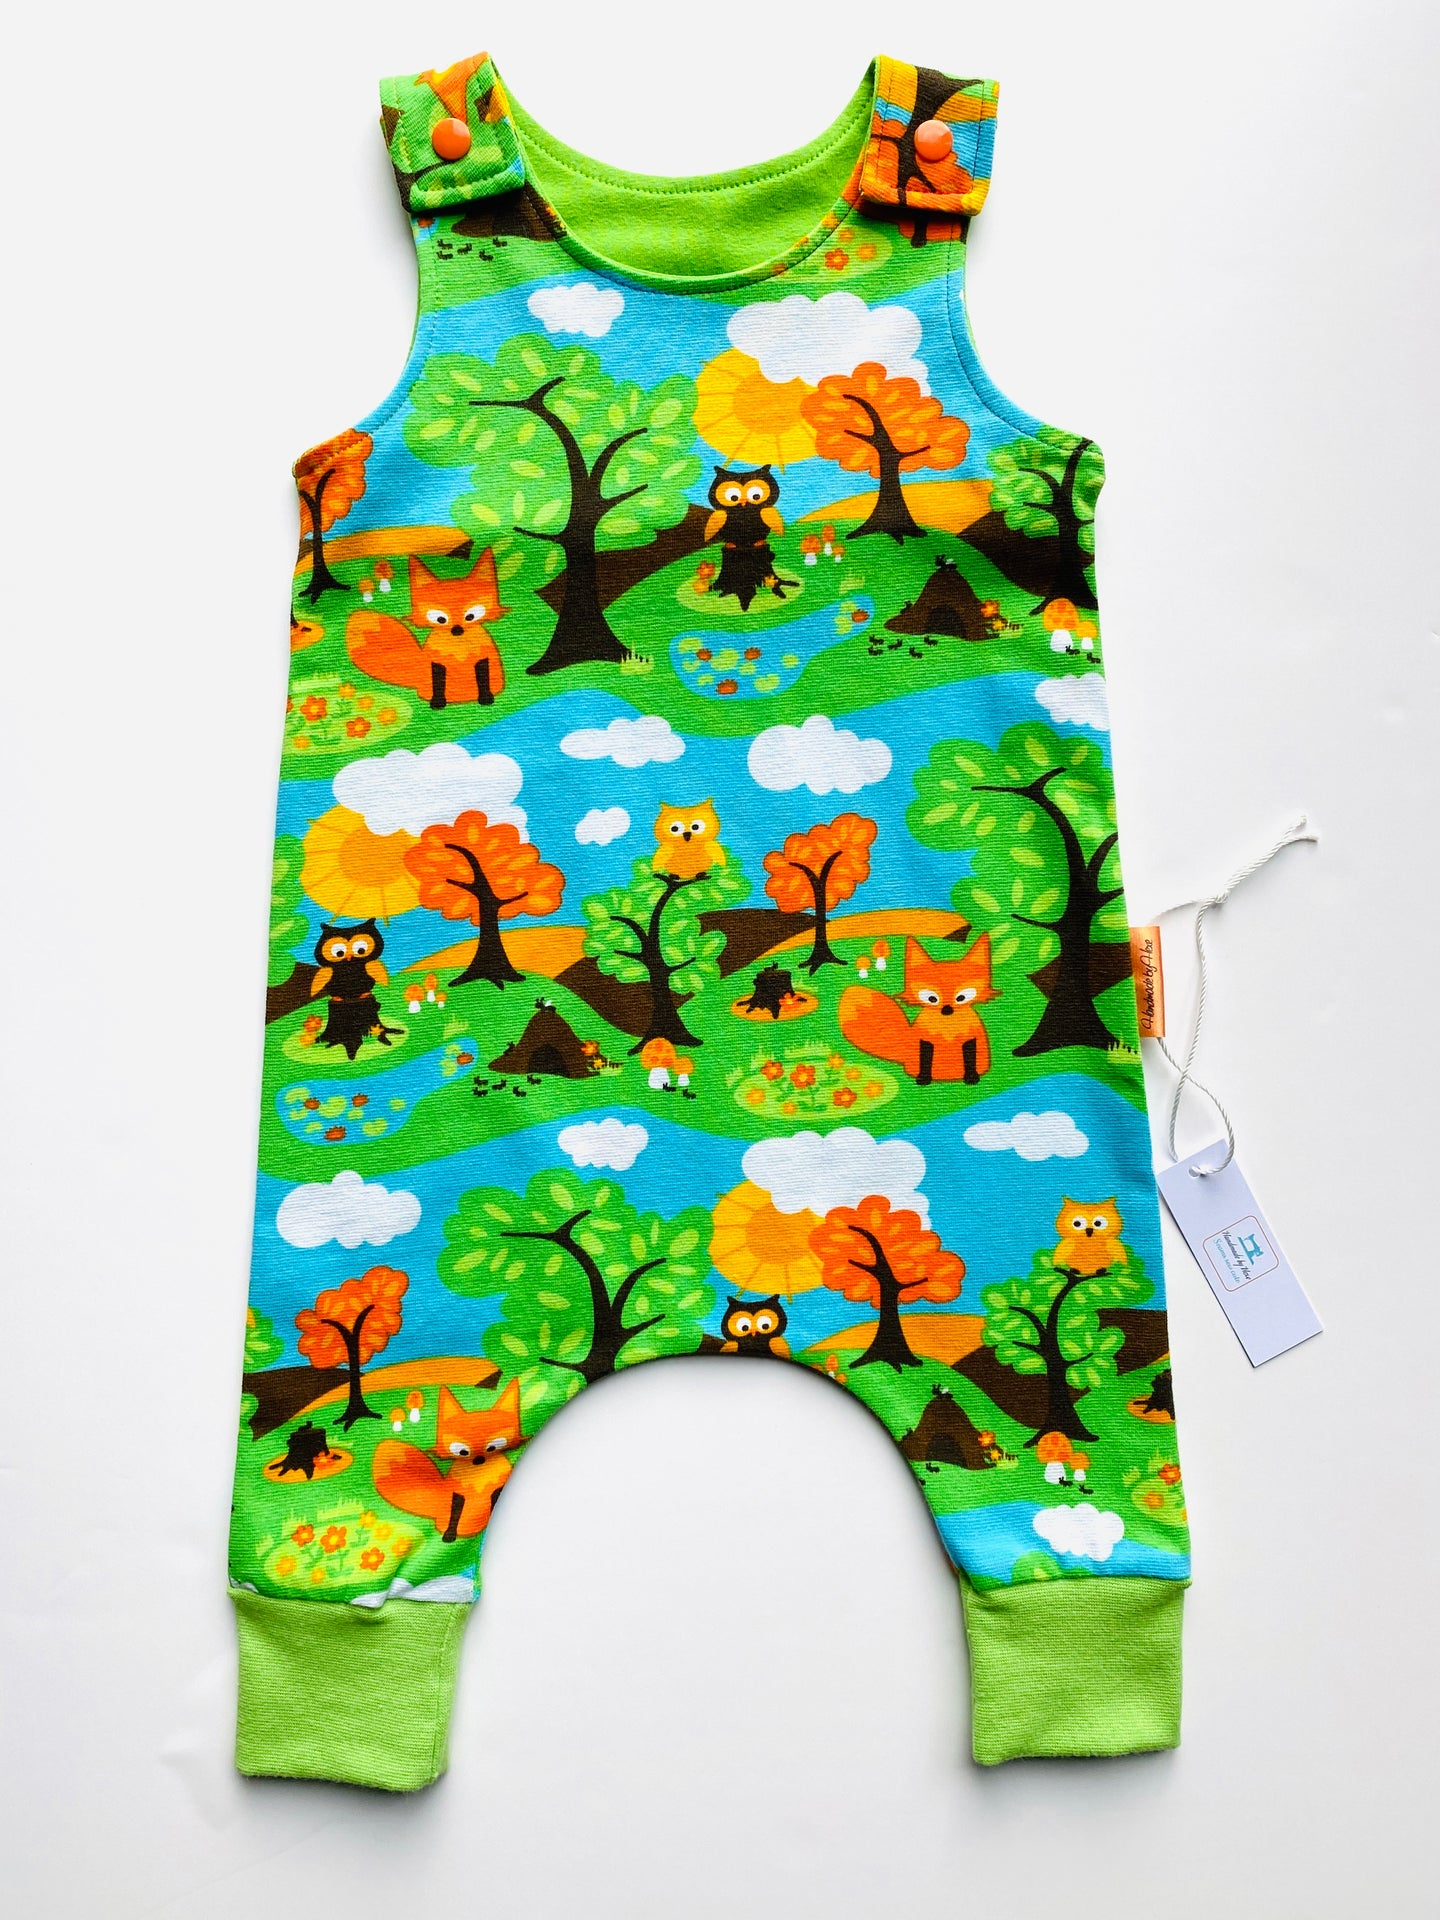 Handmade Baby Dungaree/Romper 'Fox and Owl' ORGANIC - made to order